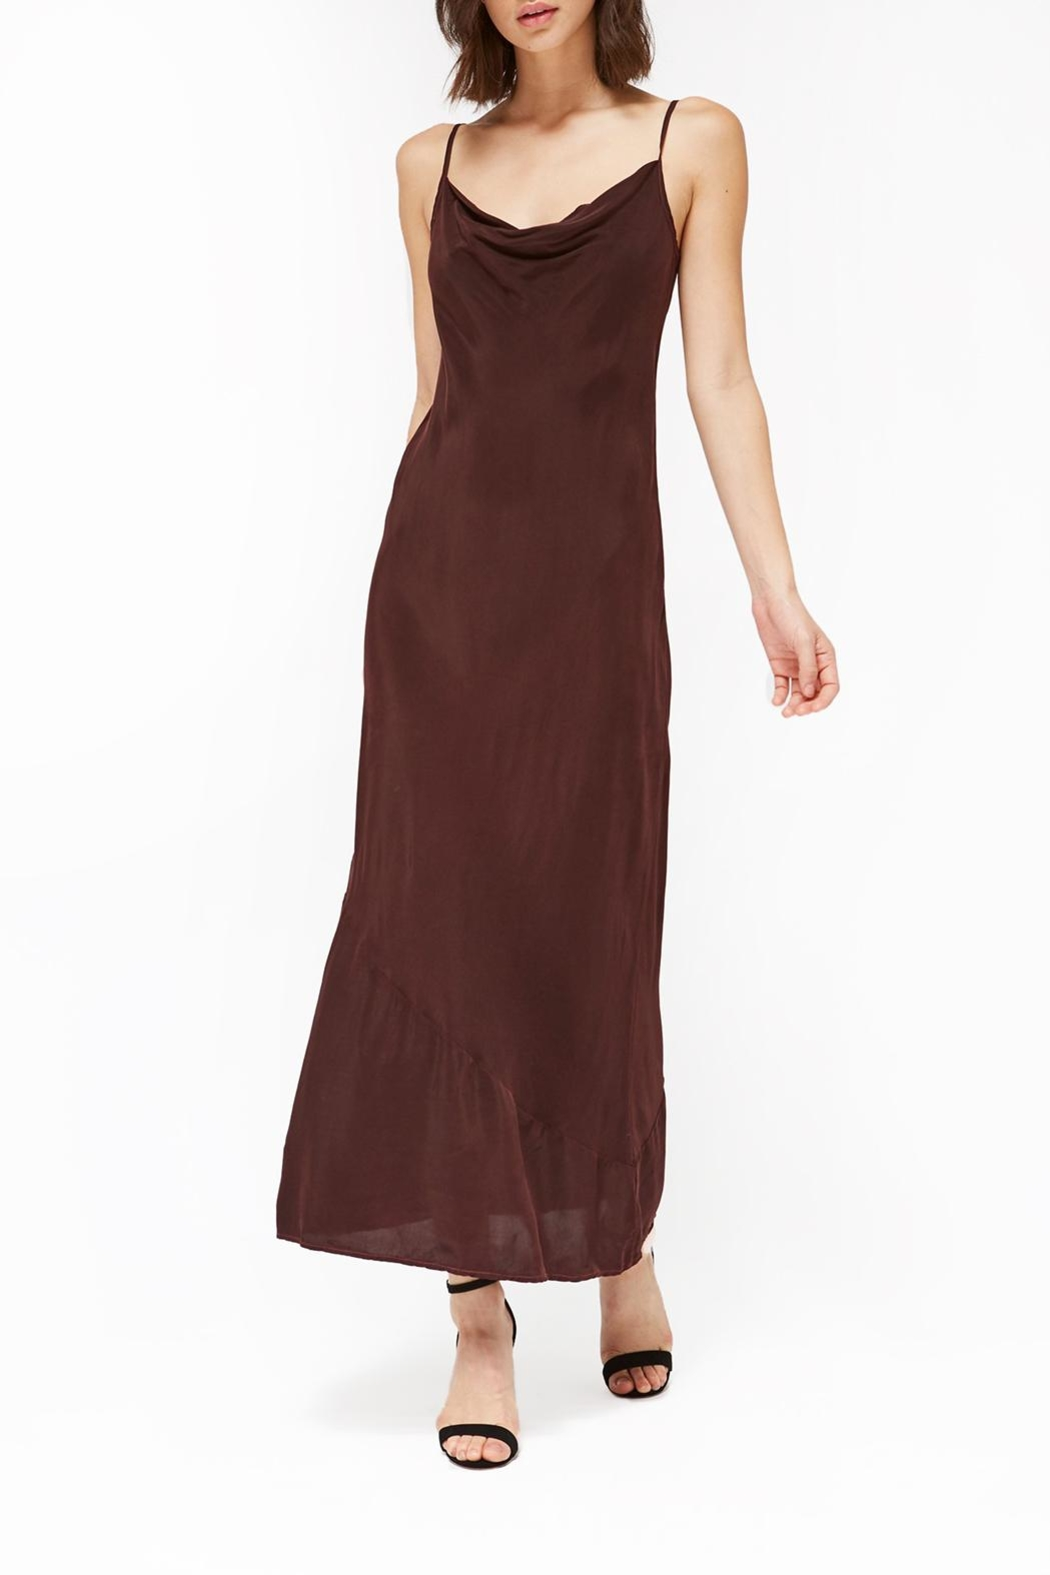 LACAUSA Bias Slip Dress - Main Image